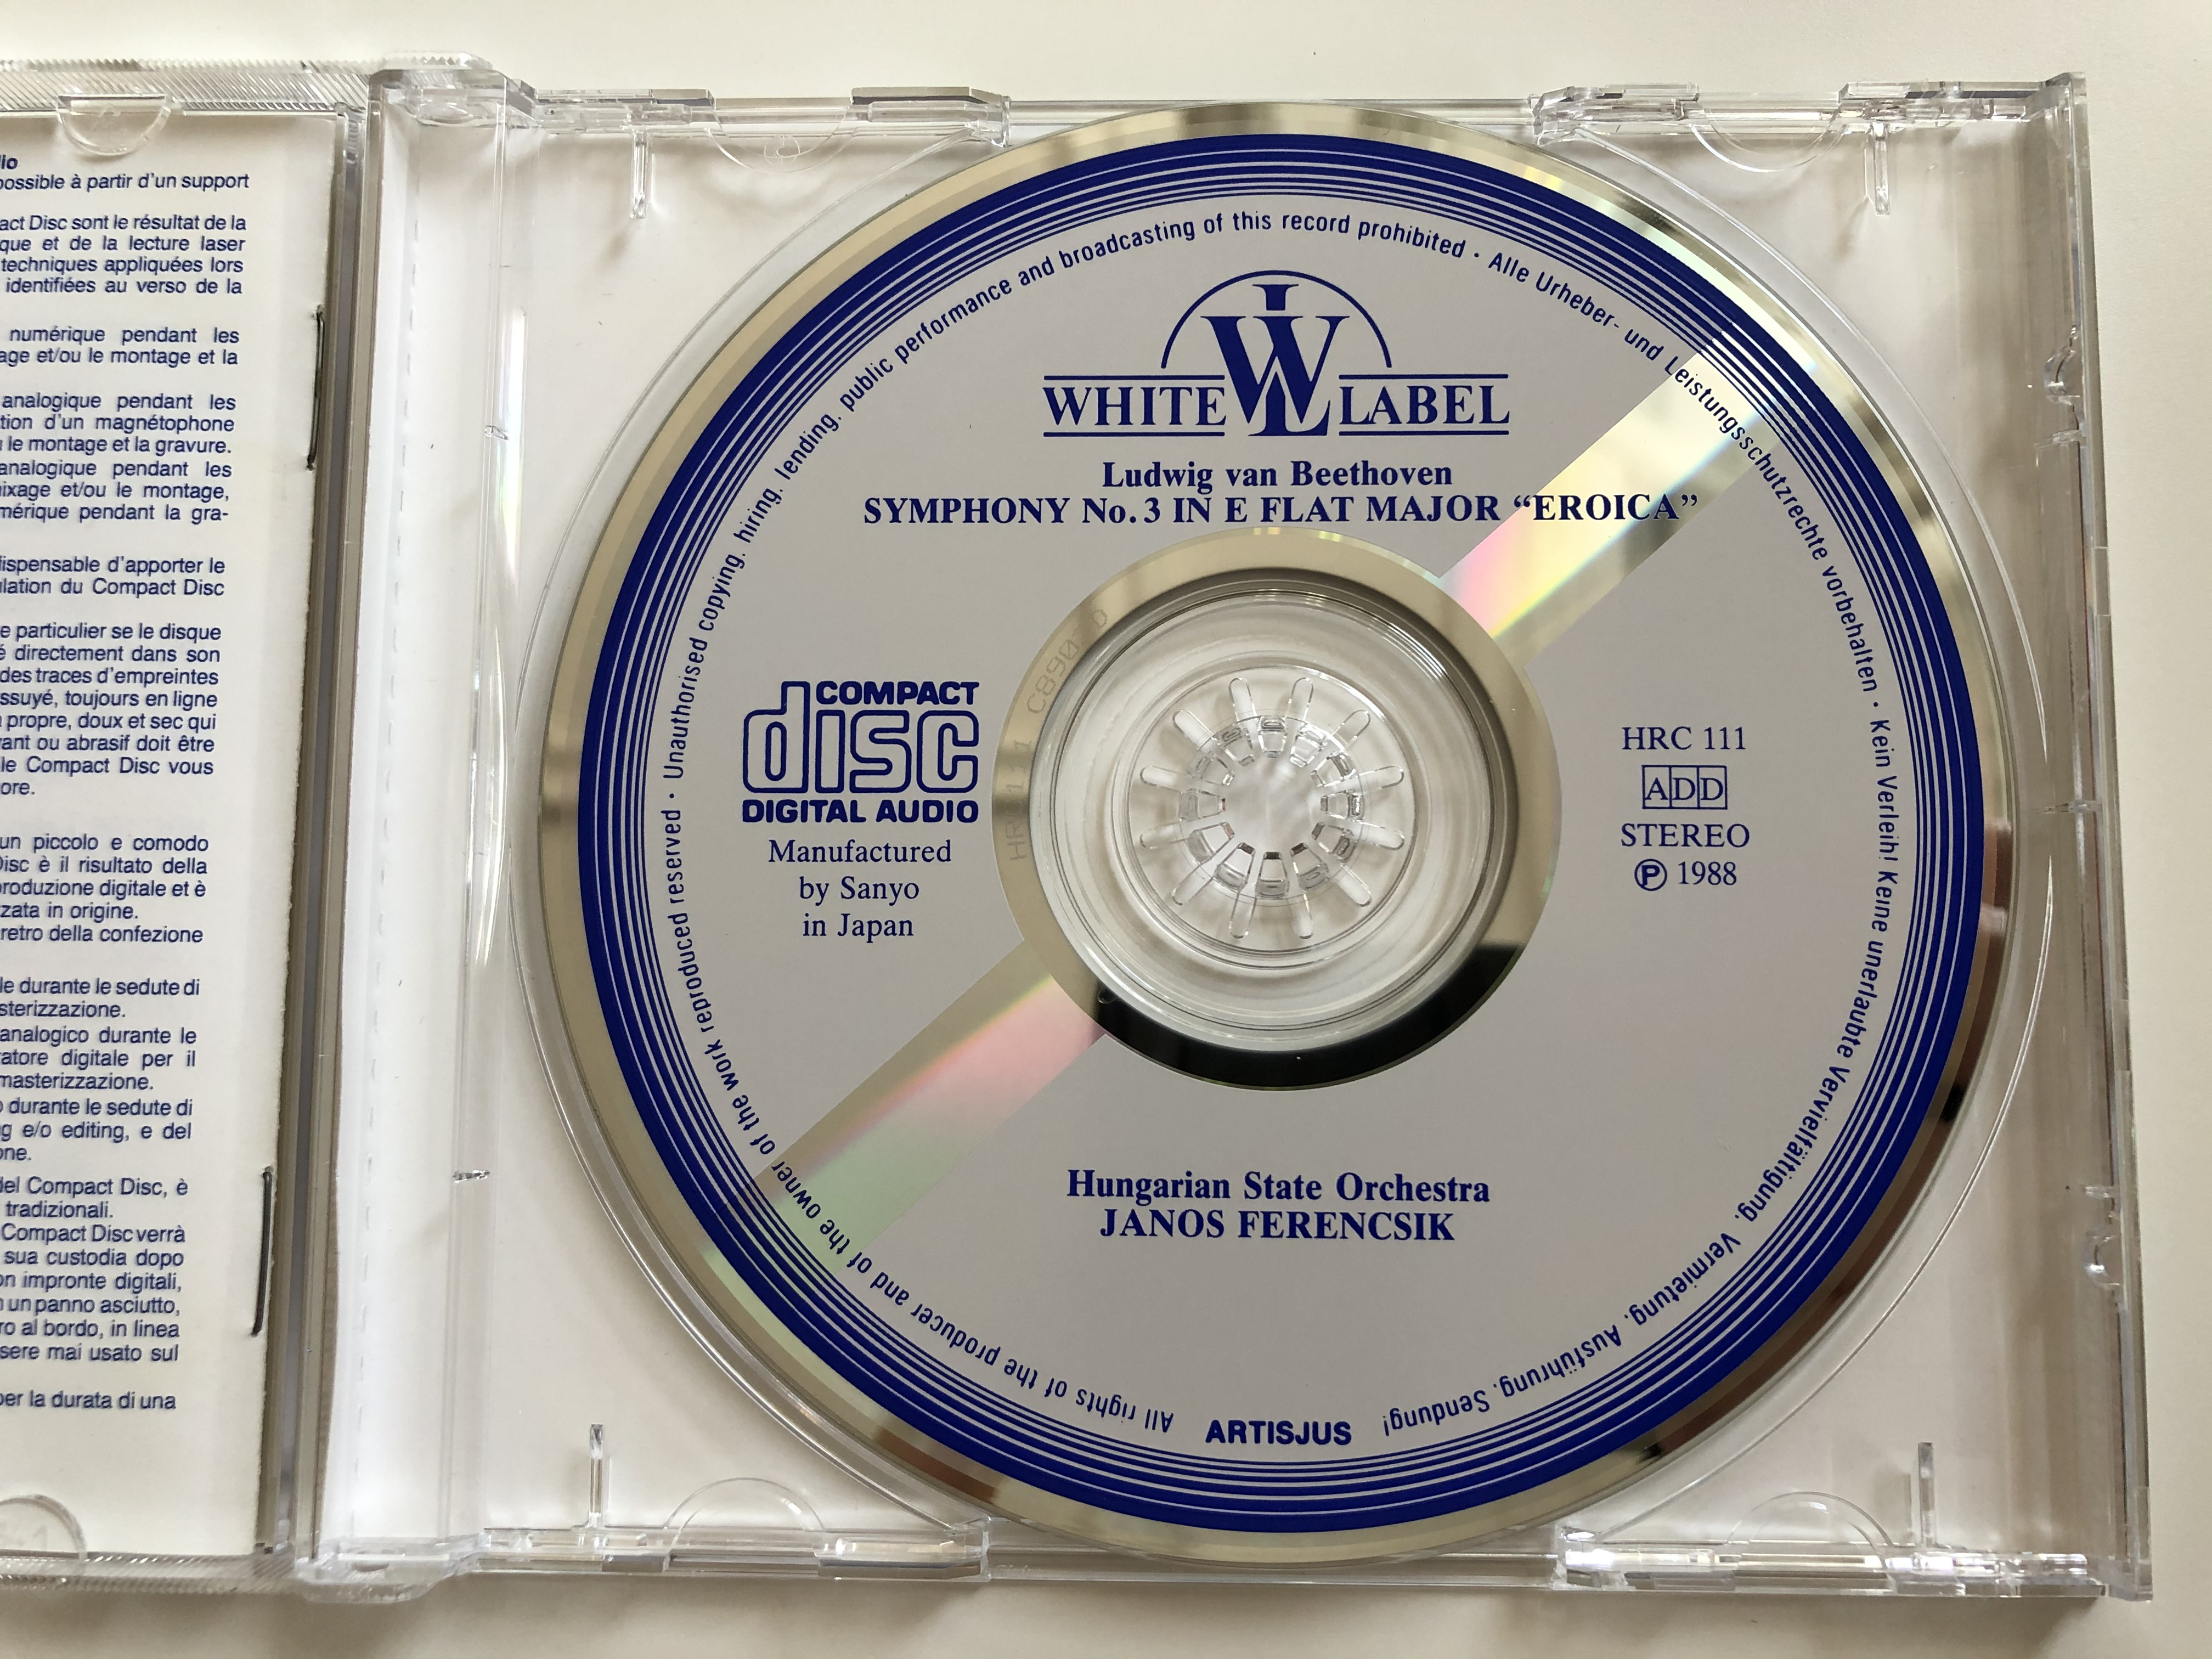 beethoven-symphony-no.-3-eroica-hungarian-state-orchestra-janos-ferencsik-white-label-audio-cd-1988-stereo-hrc-111-4-.jpg